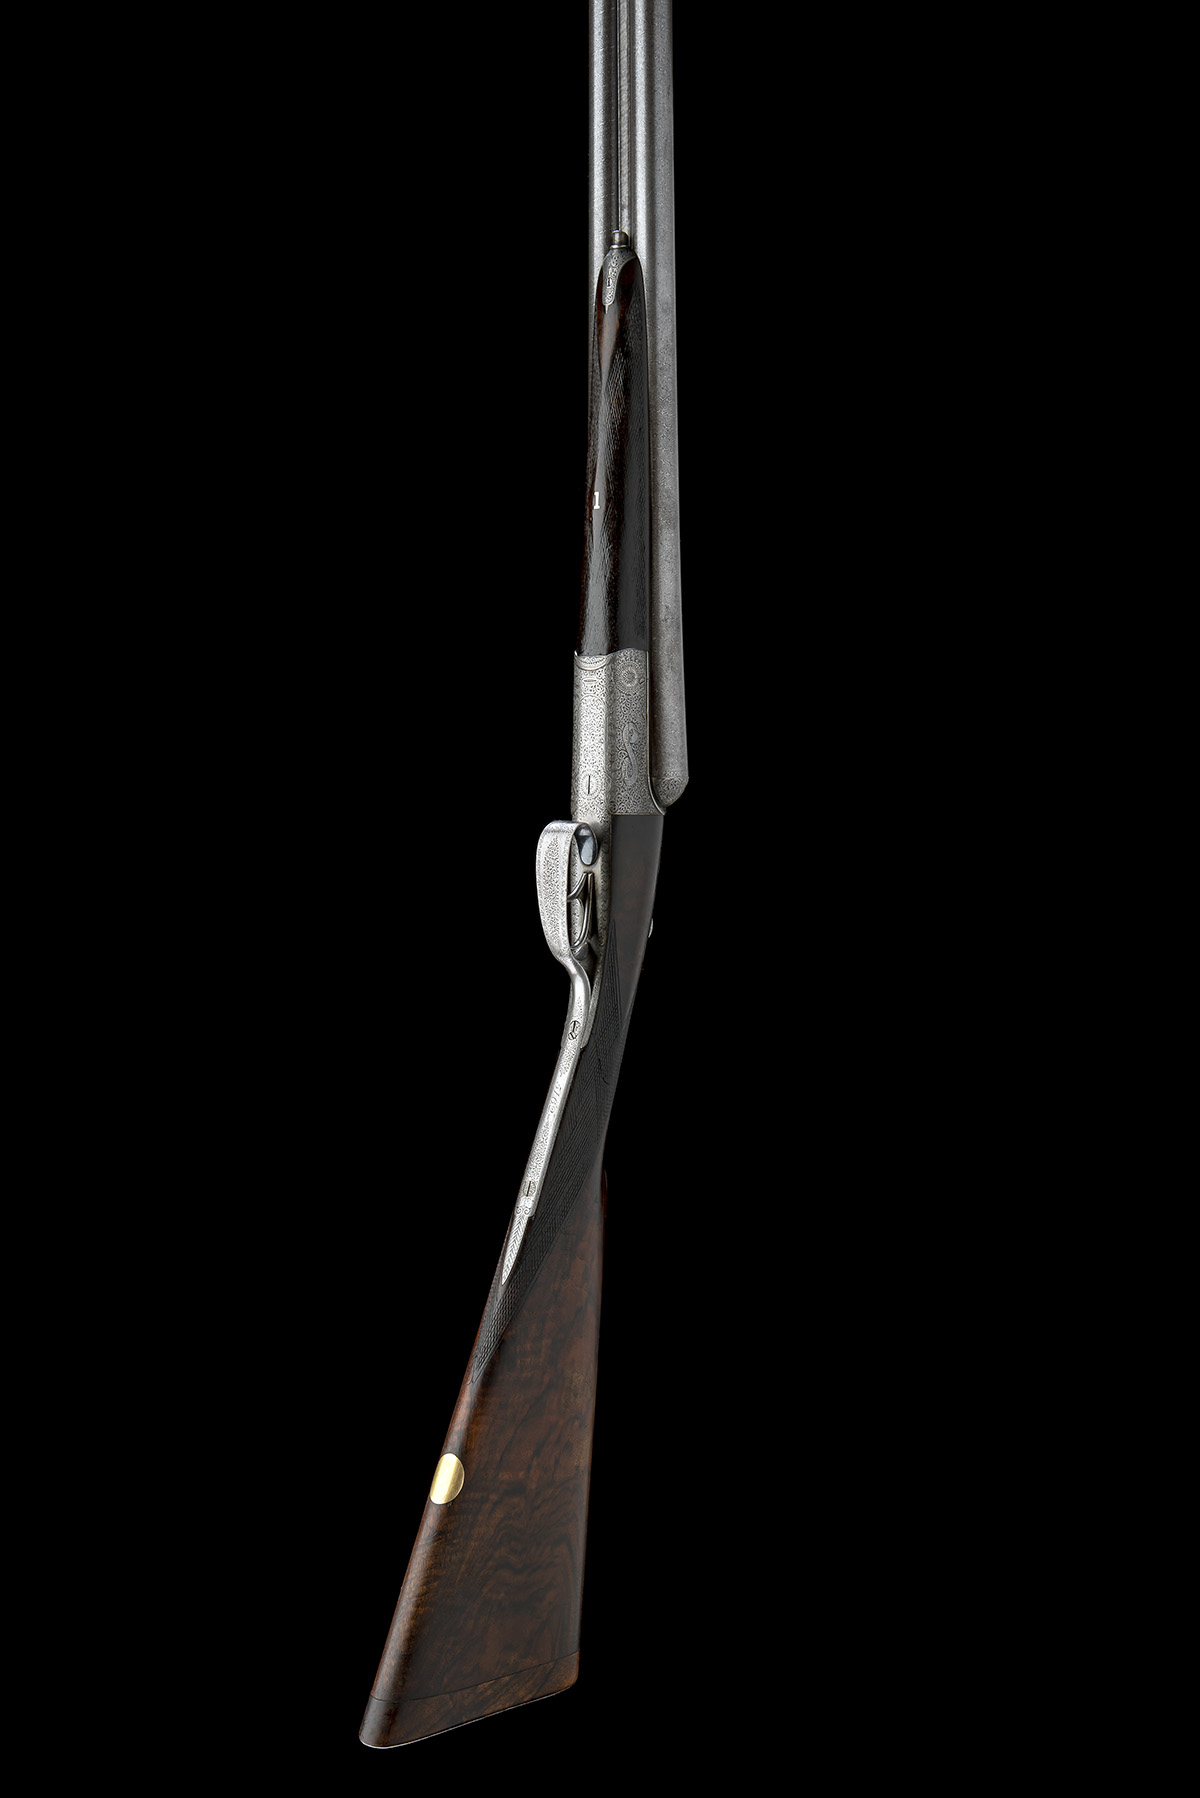 JOHN DICKSON & SON A 12-BORE 1887 PATENT 'ROUND-ACTION' TRIGGERPLATE-ACTION EJECTOR, serial no. - Image 6 of 8